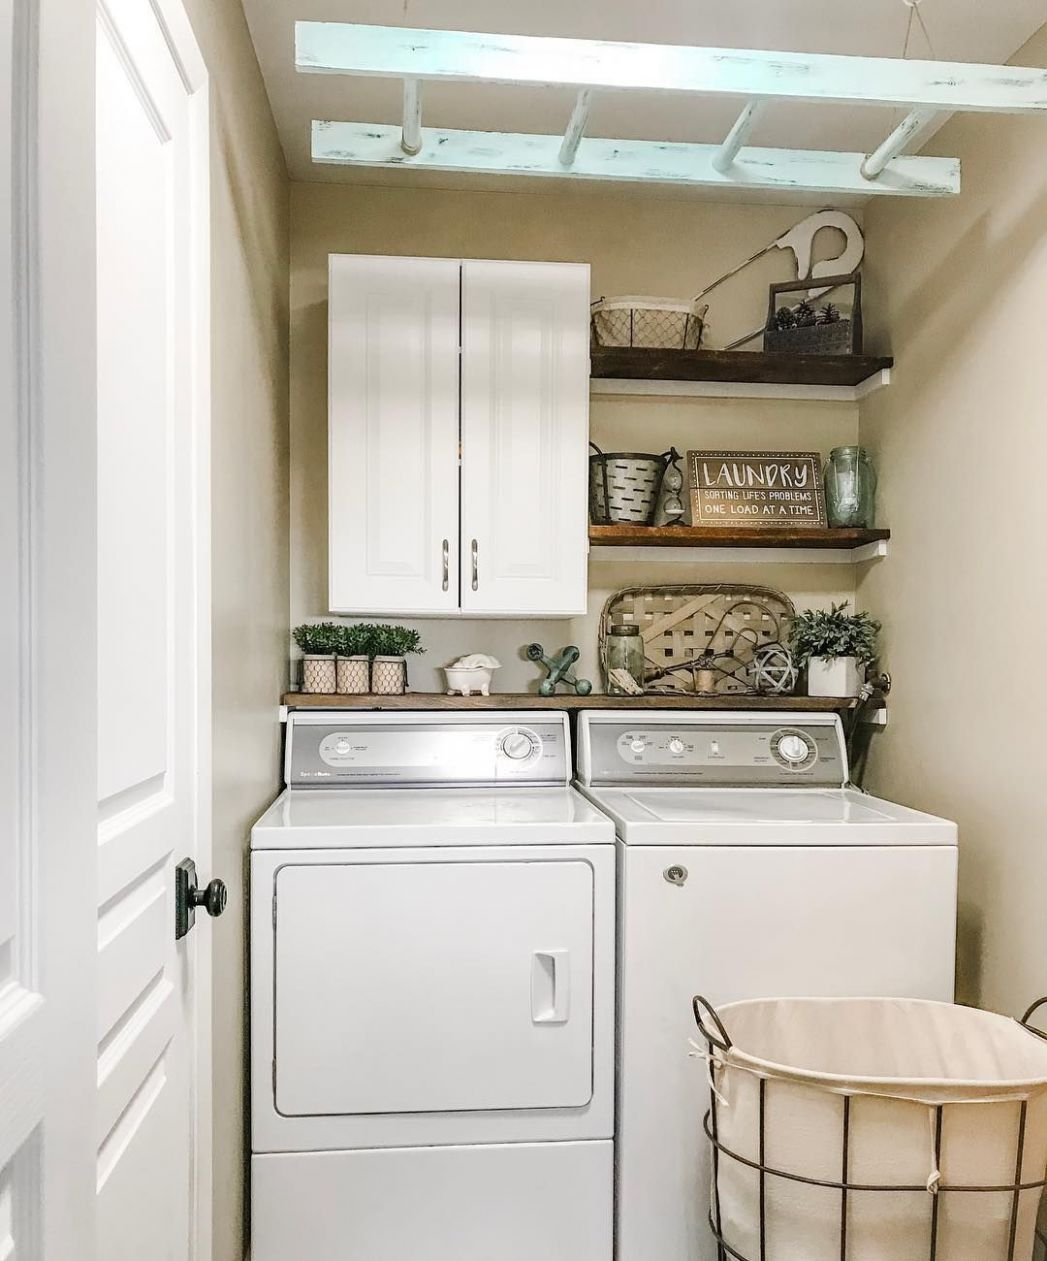 Pin on Laundry room - laundry room ideas top loader